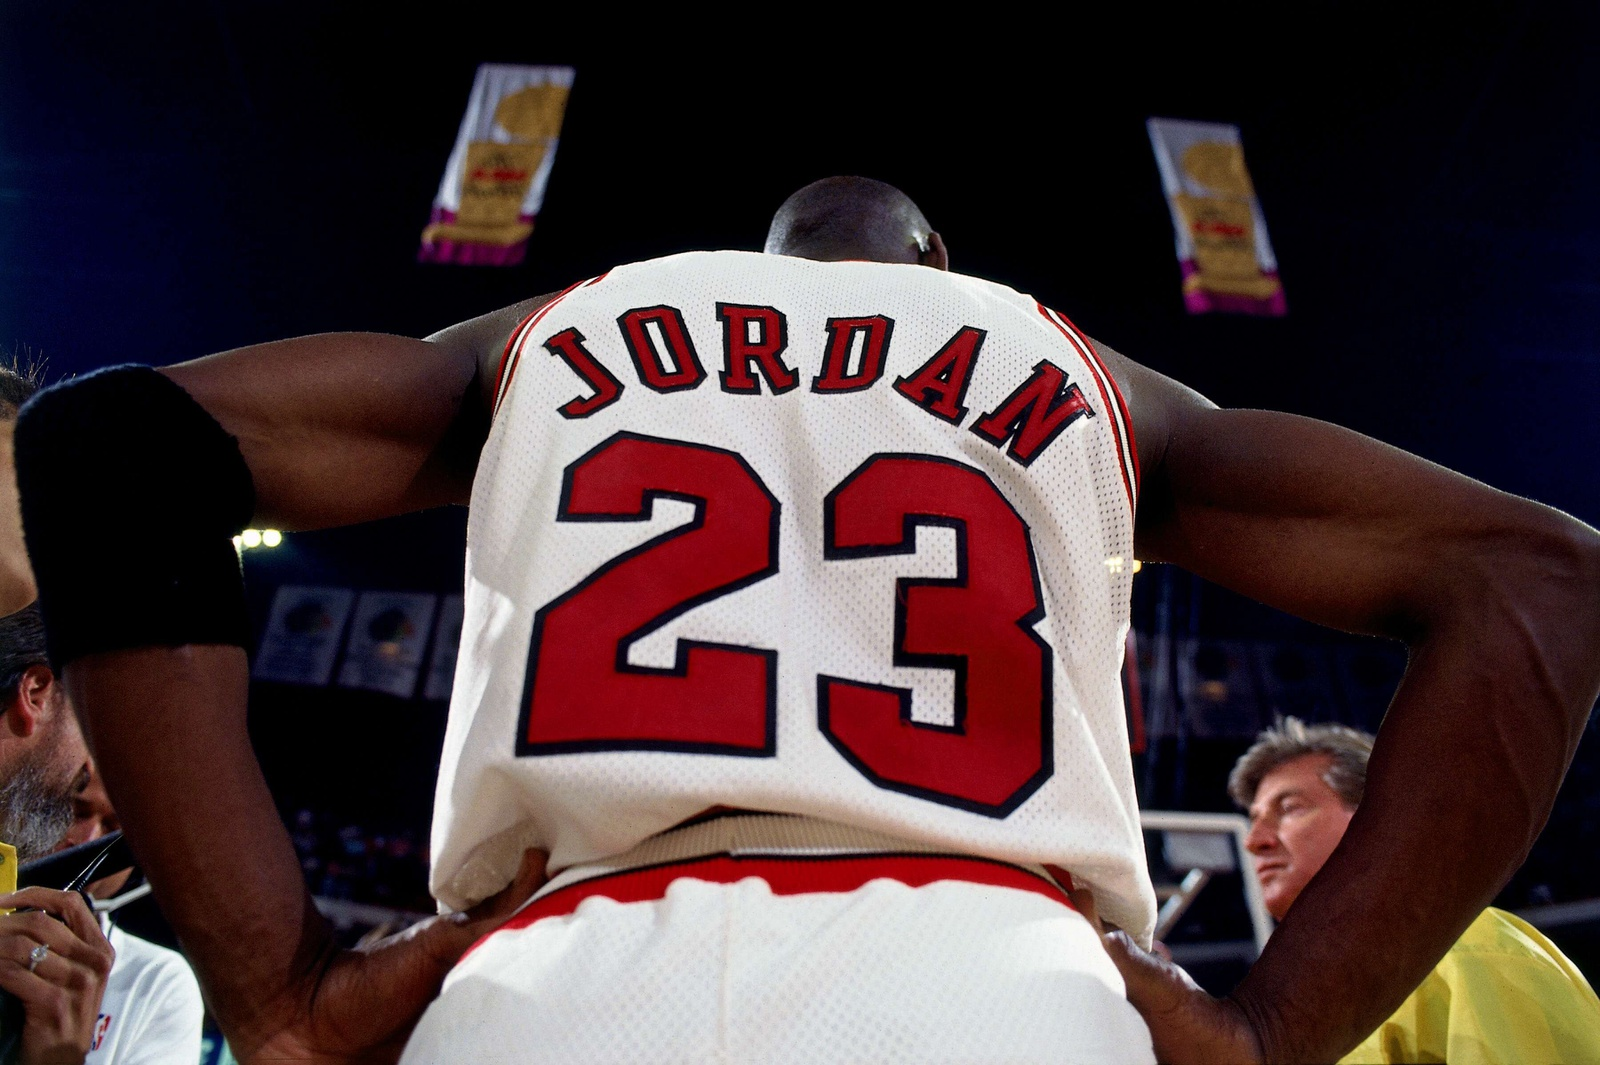 Michael Jordan #23 of the Chicago Bulls stands in the huddle against the Phoenix Suns in Game Four of the 1993 NBA Finals on June 16, 1993 at the Chicago Stadium in Chicago, Illinois. The Bulls won 111-105.